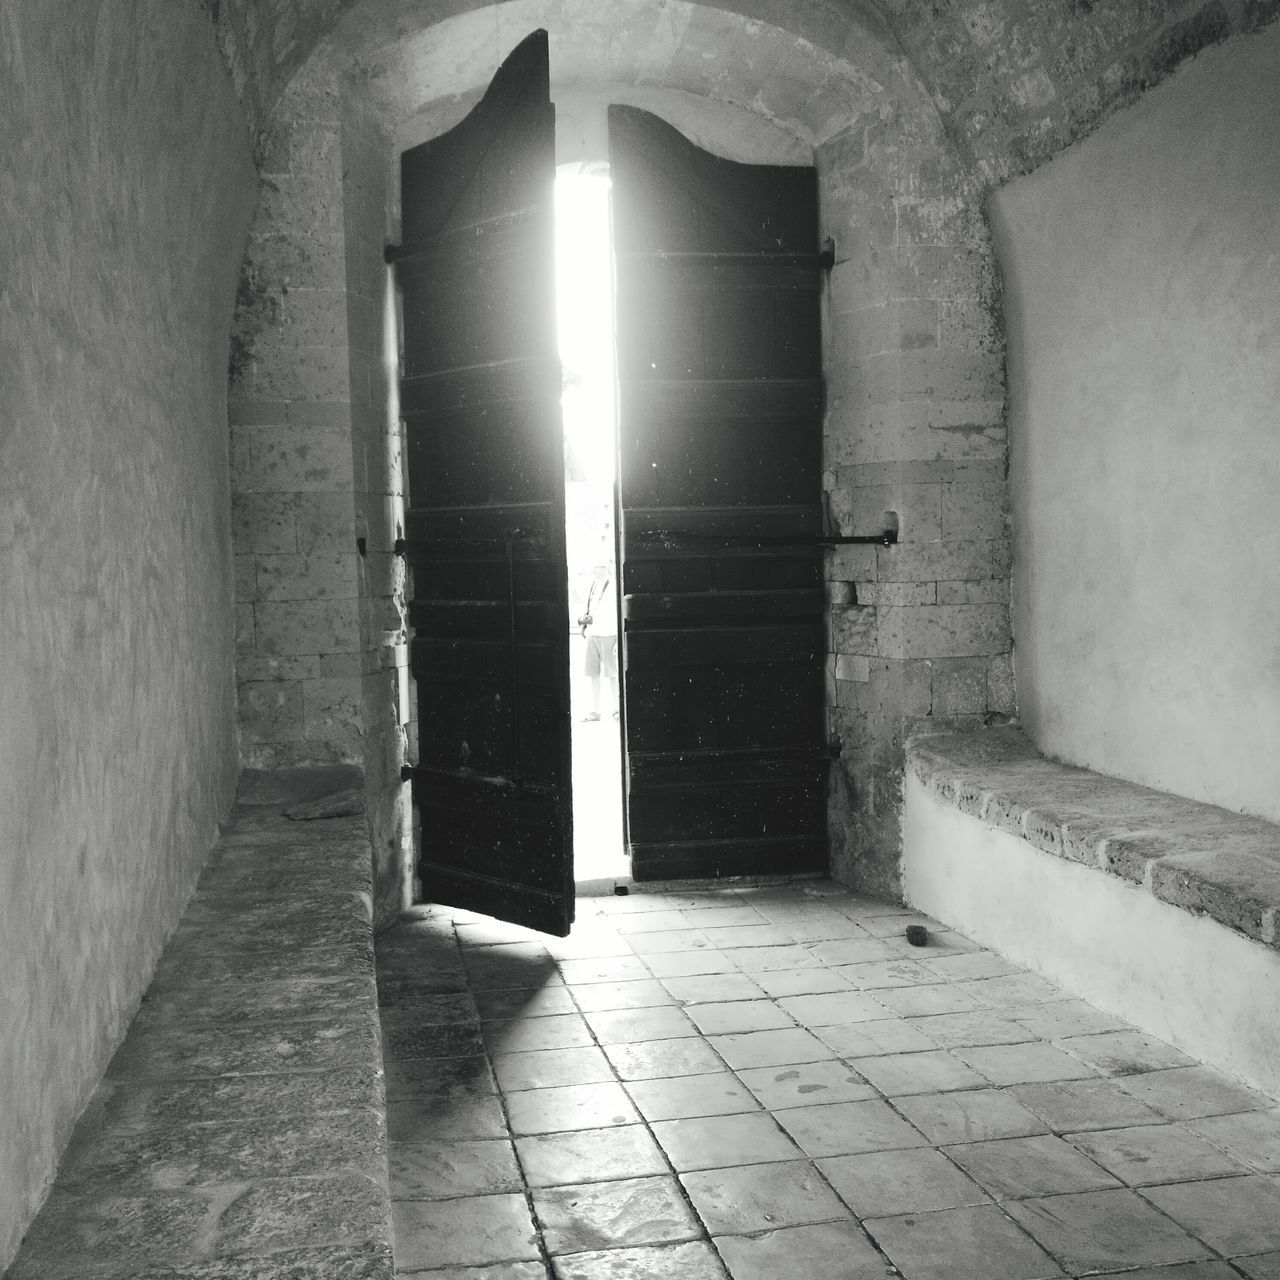 Big Door Otherside Otherworldly Go Outdoors Go Out OpenWorld OpenDoors Black And White Lightbeam Door